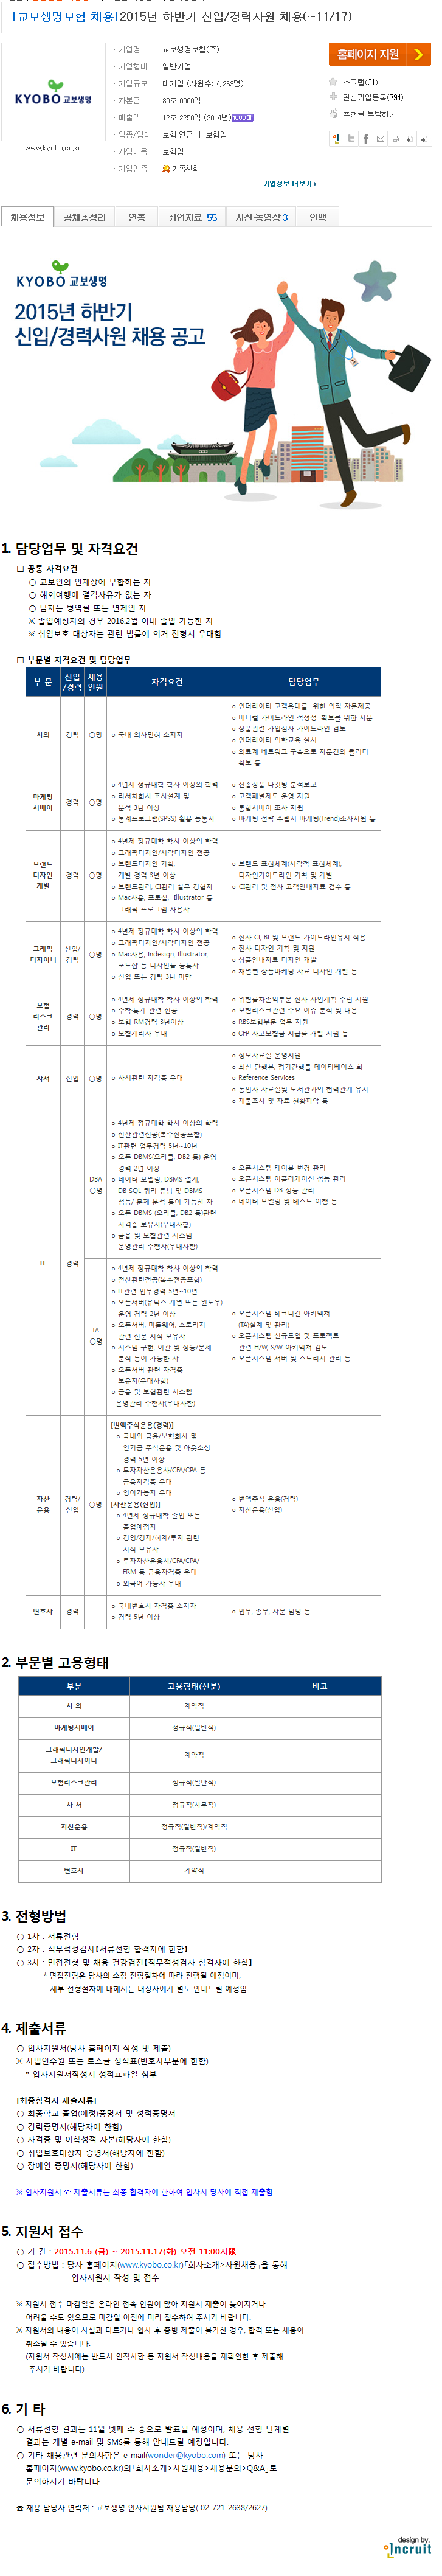 http://customerfile.incruit.com/jobpost/kyobo.png